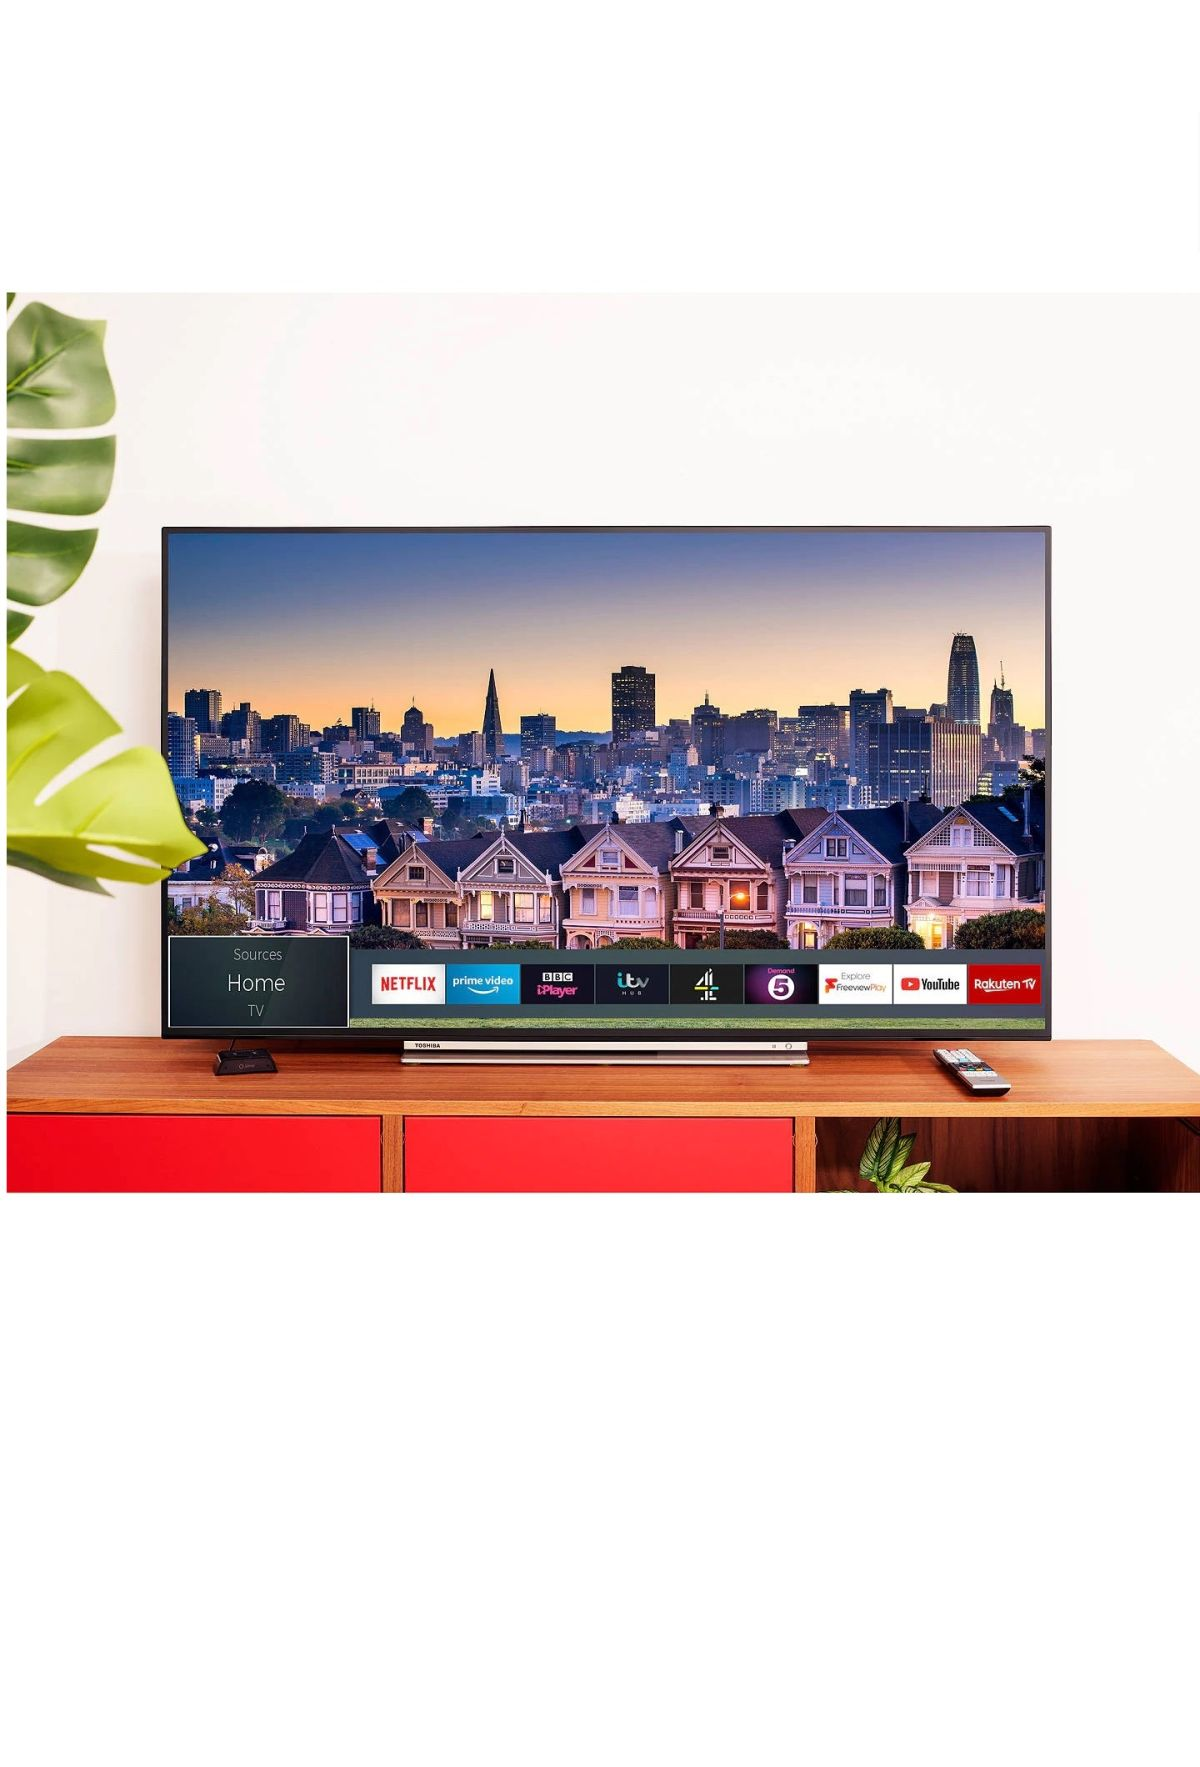 TV deal of the week!